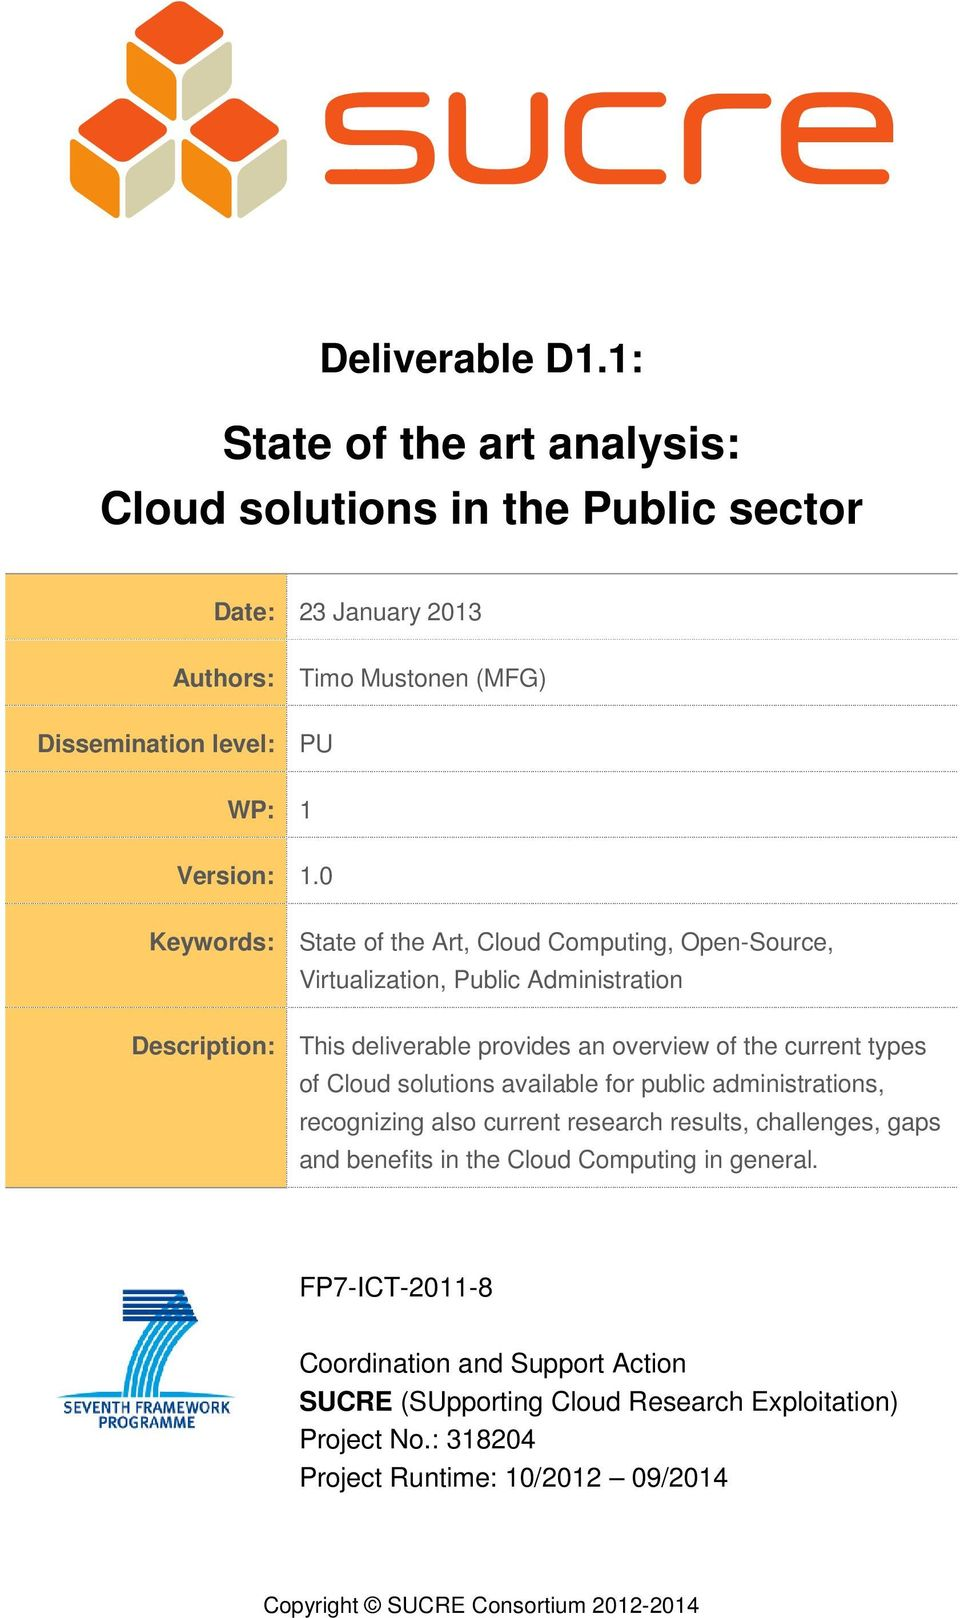 0 Keywords: State of the Art, Cloud Computing, Open-Source, Virtualization, Public Administration Description: This deliverable provides an overview of the current types of